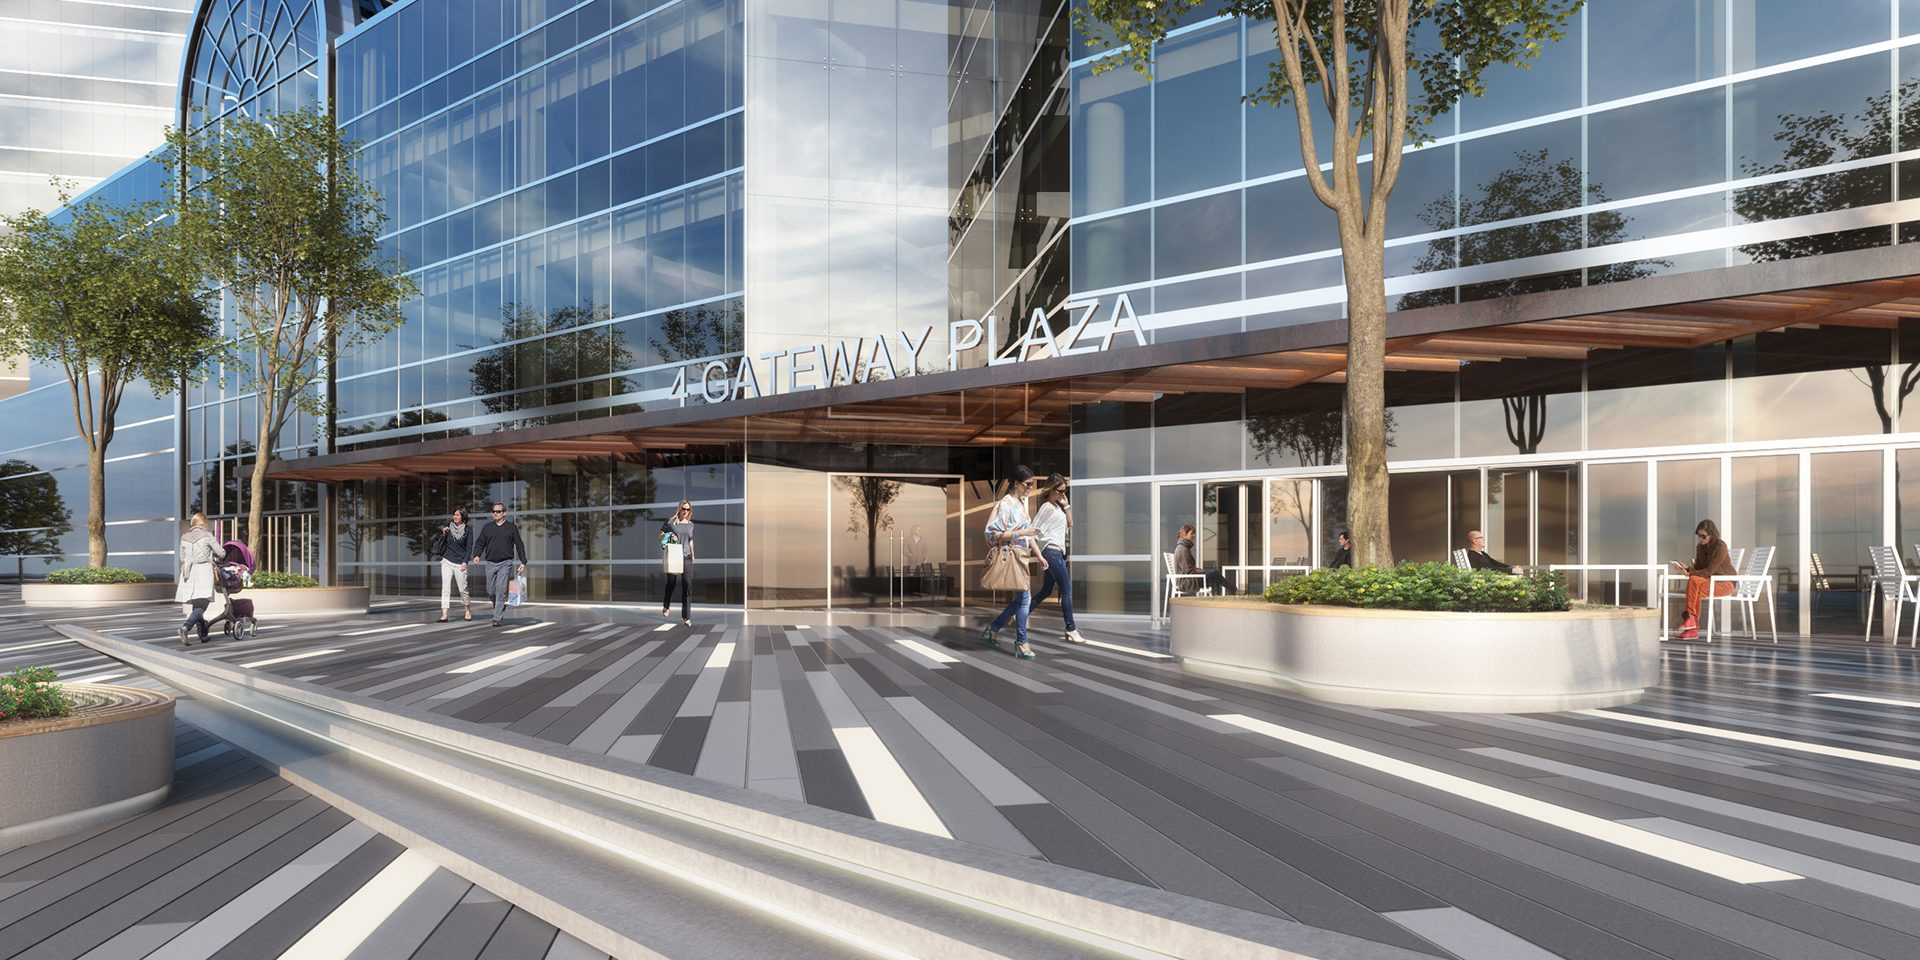 Rendering of proposed street plaza at 4 Gateway Center